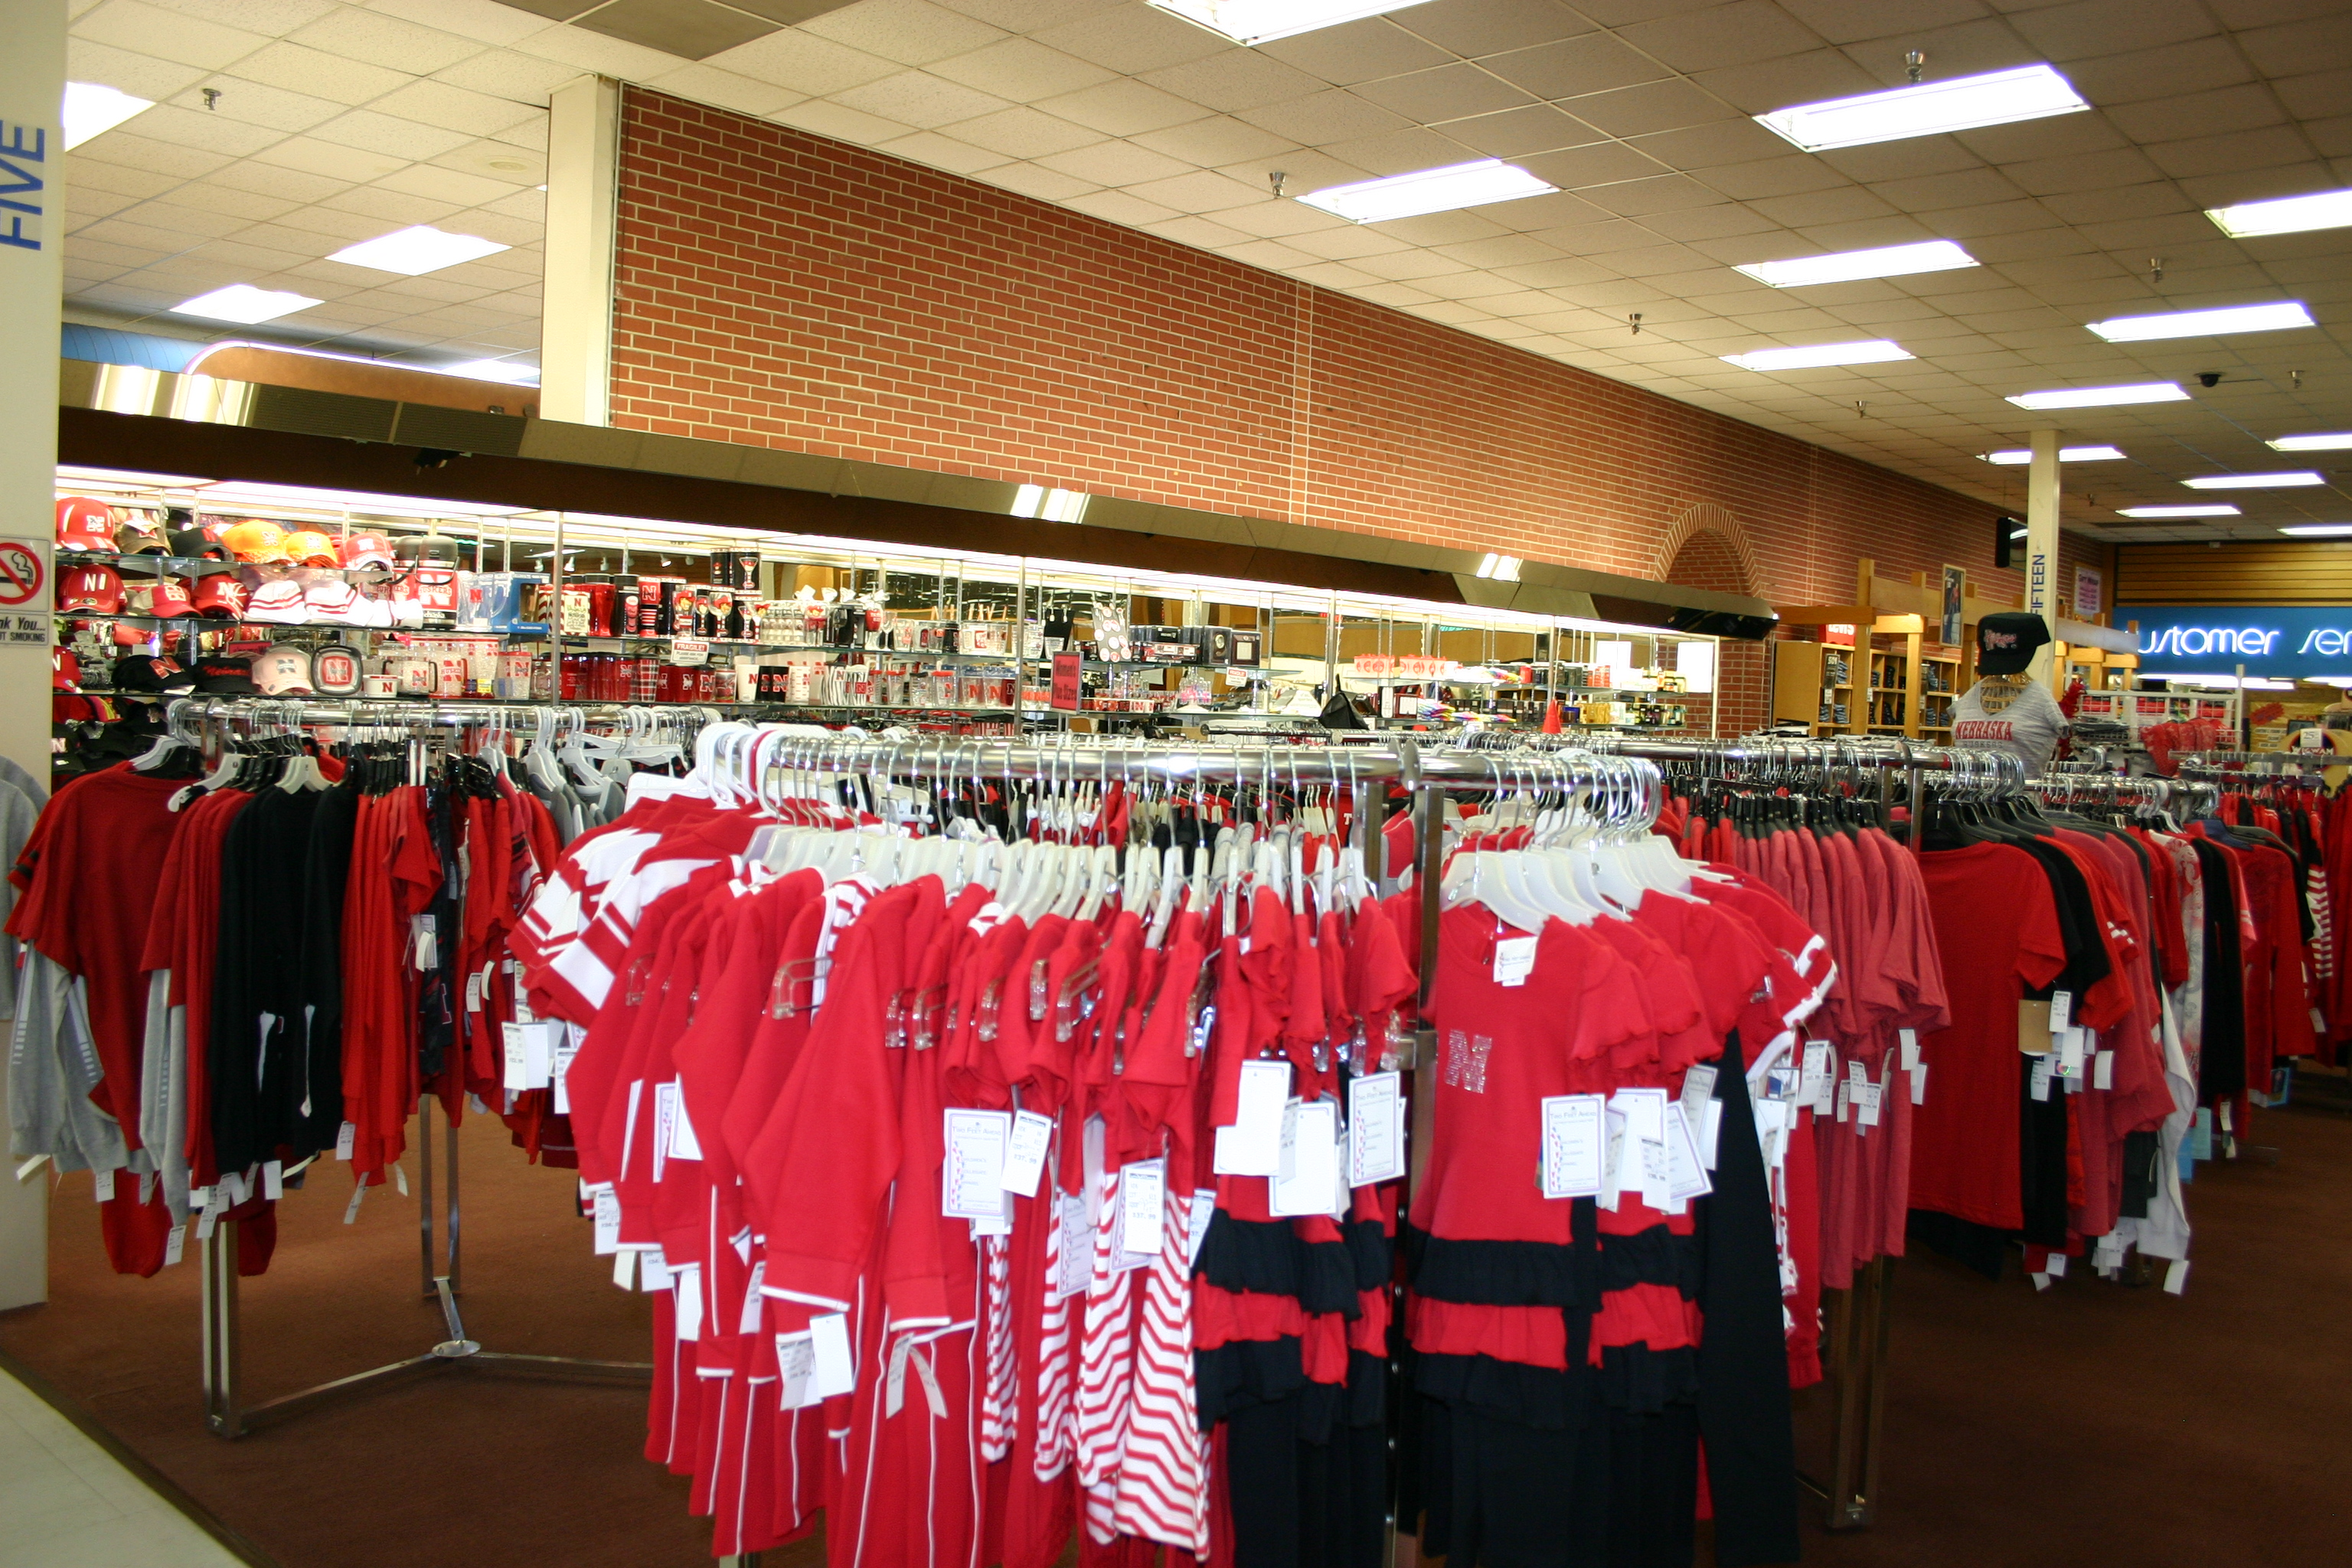 View Larger /assets/site/web/images/directory/gallery/16/35186-Husker Clothing (1).JPG